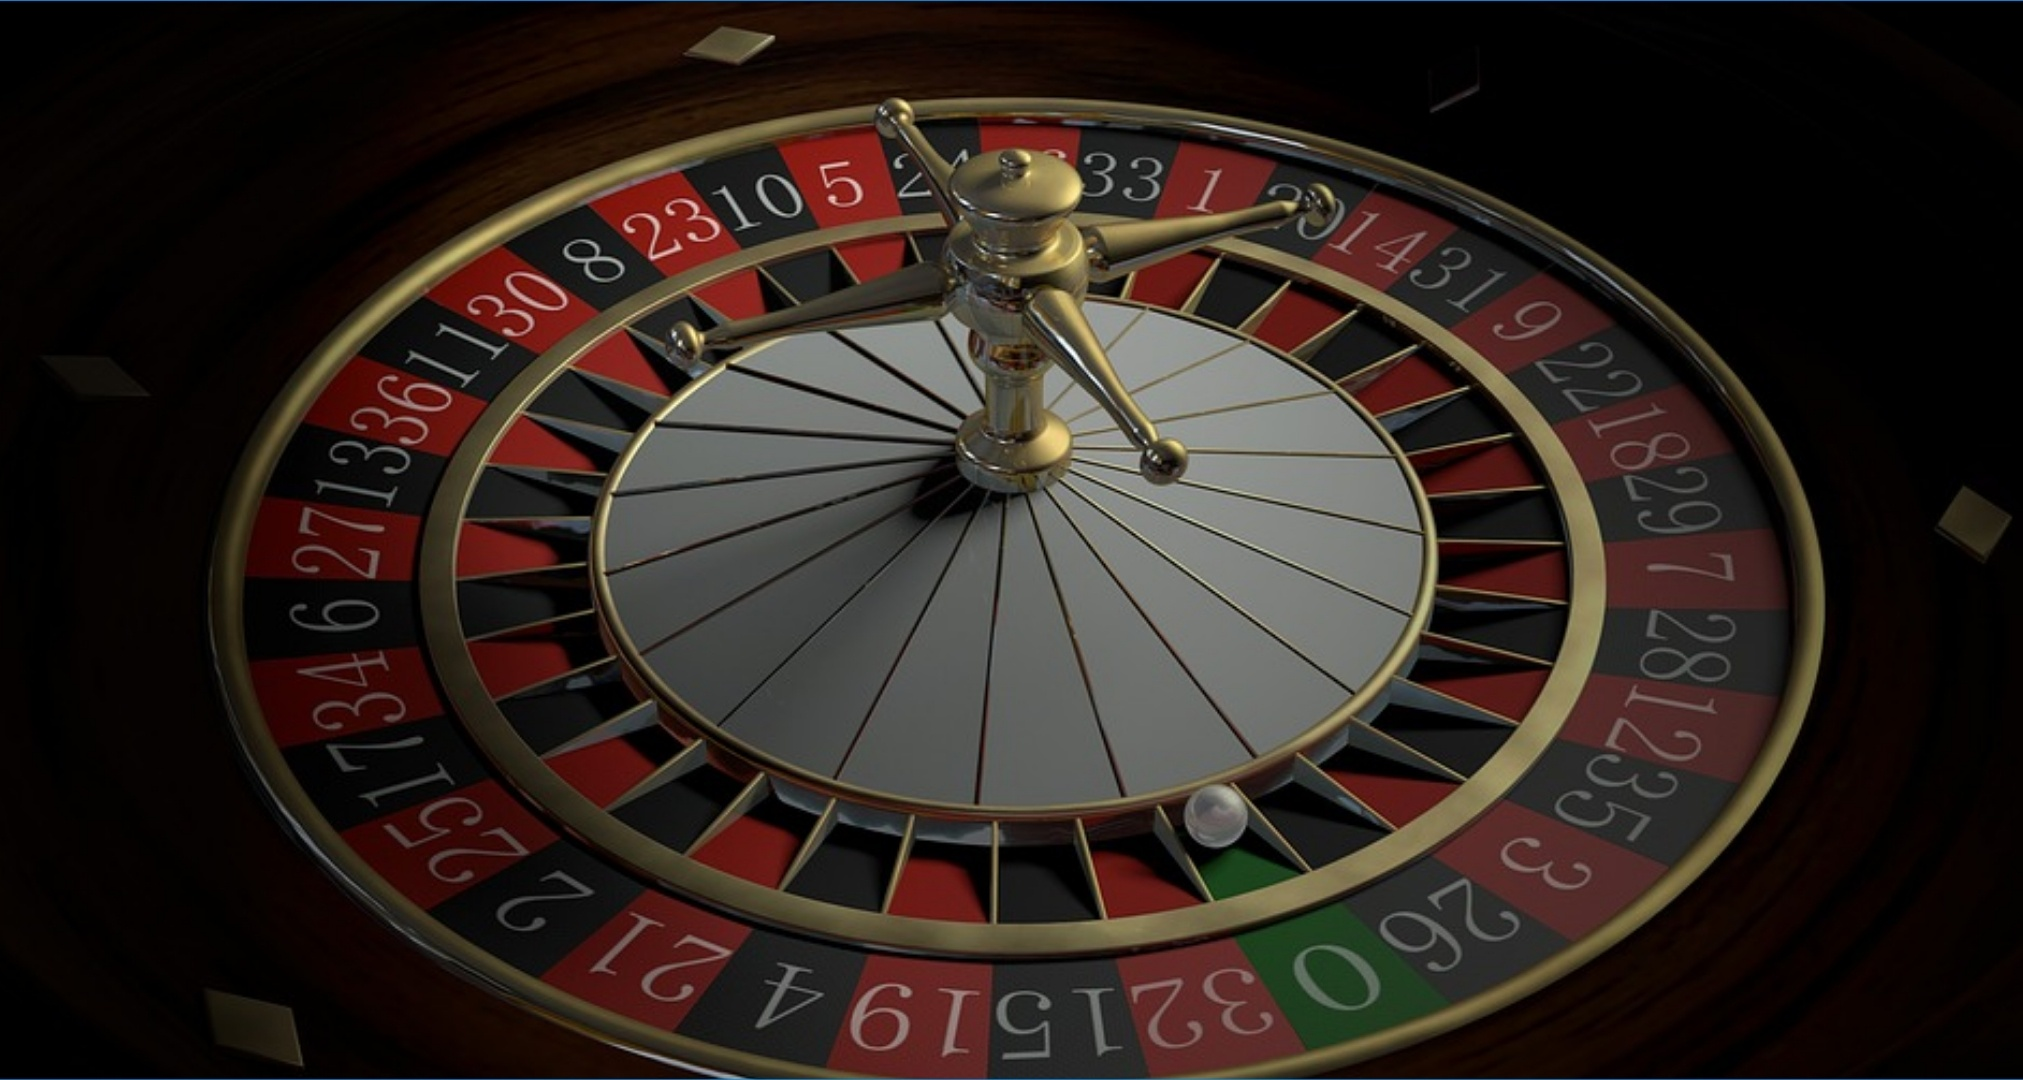 Gambling Sites Do's And Don'ts